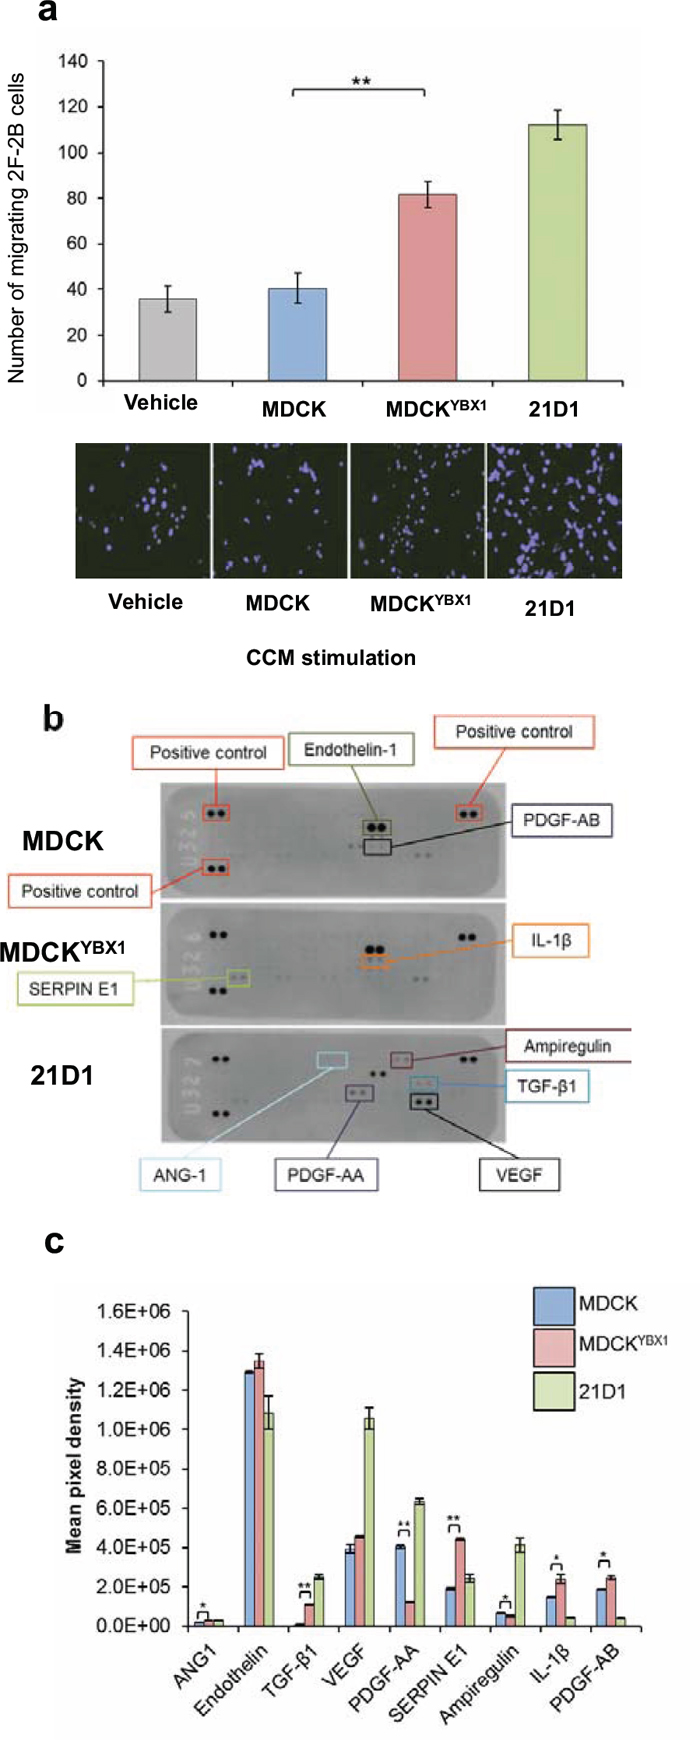 MDCKYBX1 cells secrete angiogenic factors which increase endothelial cell migration.